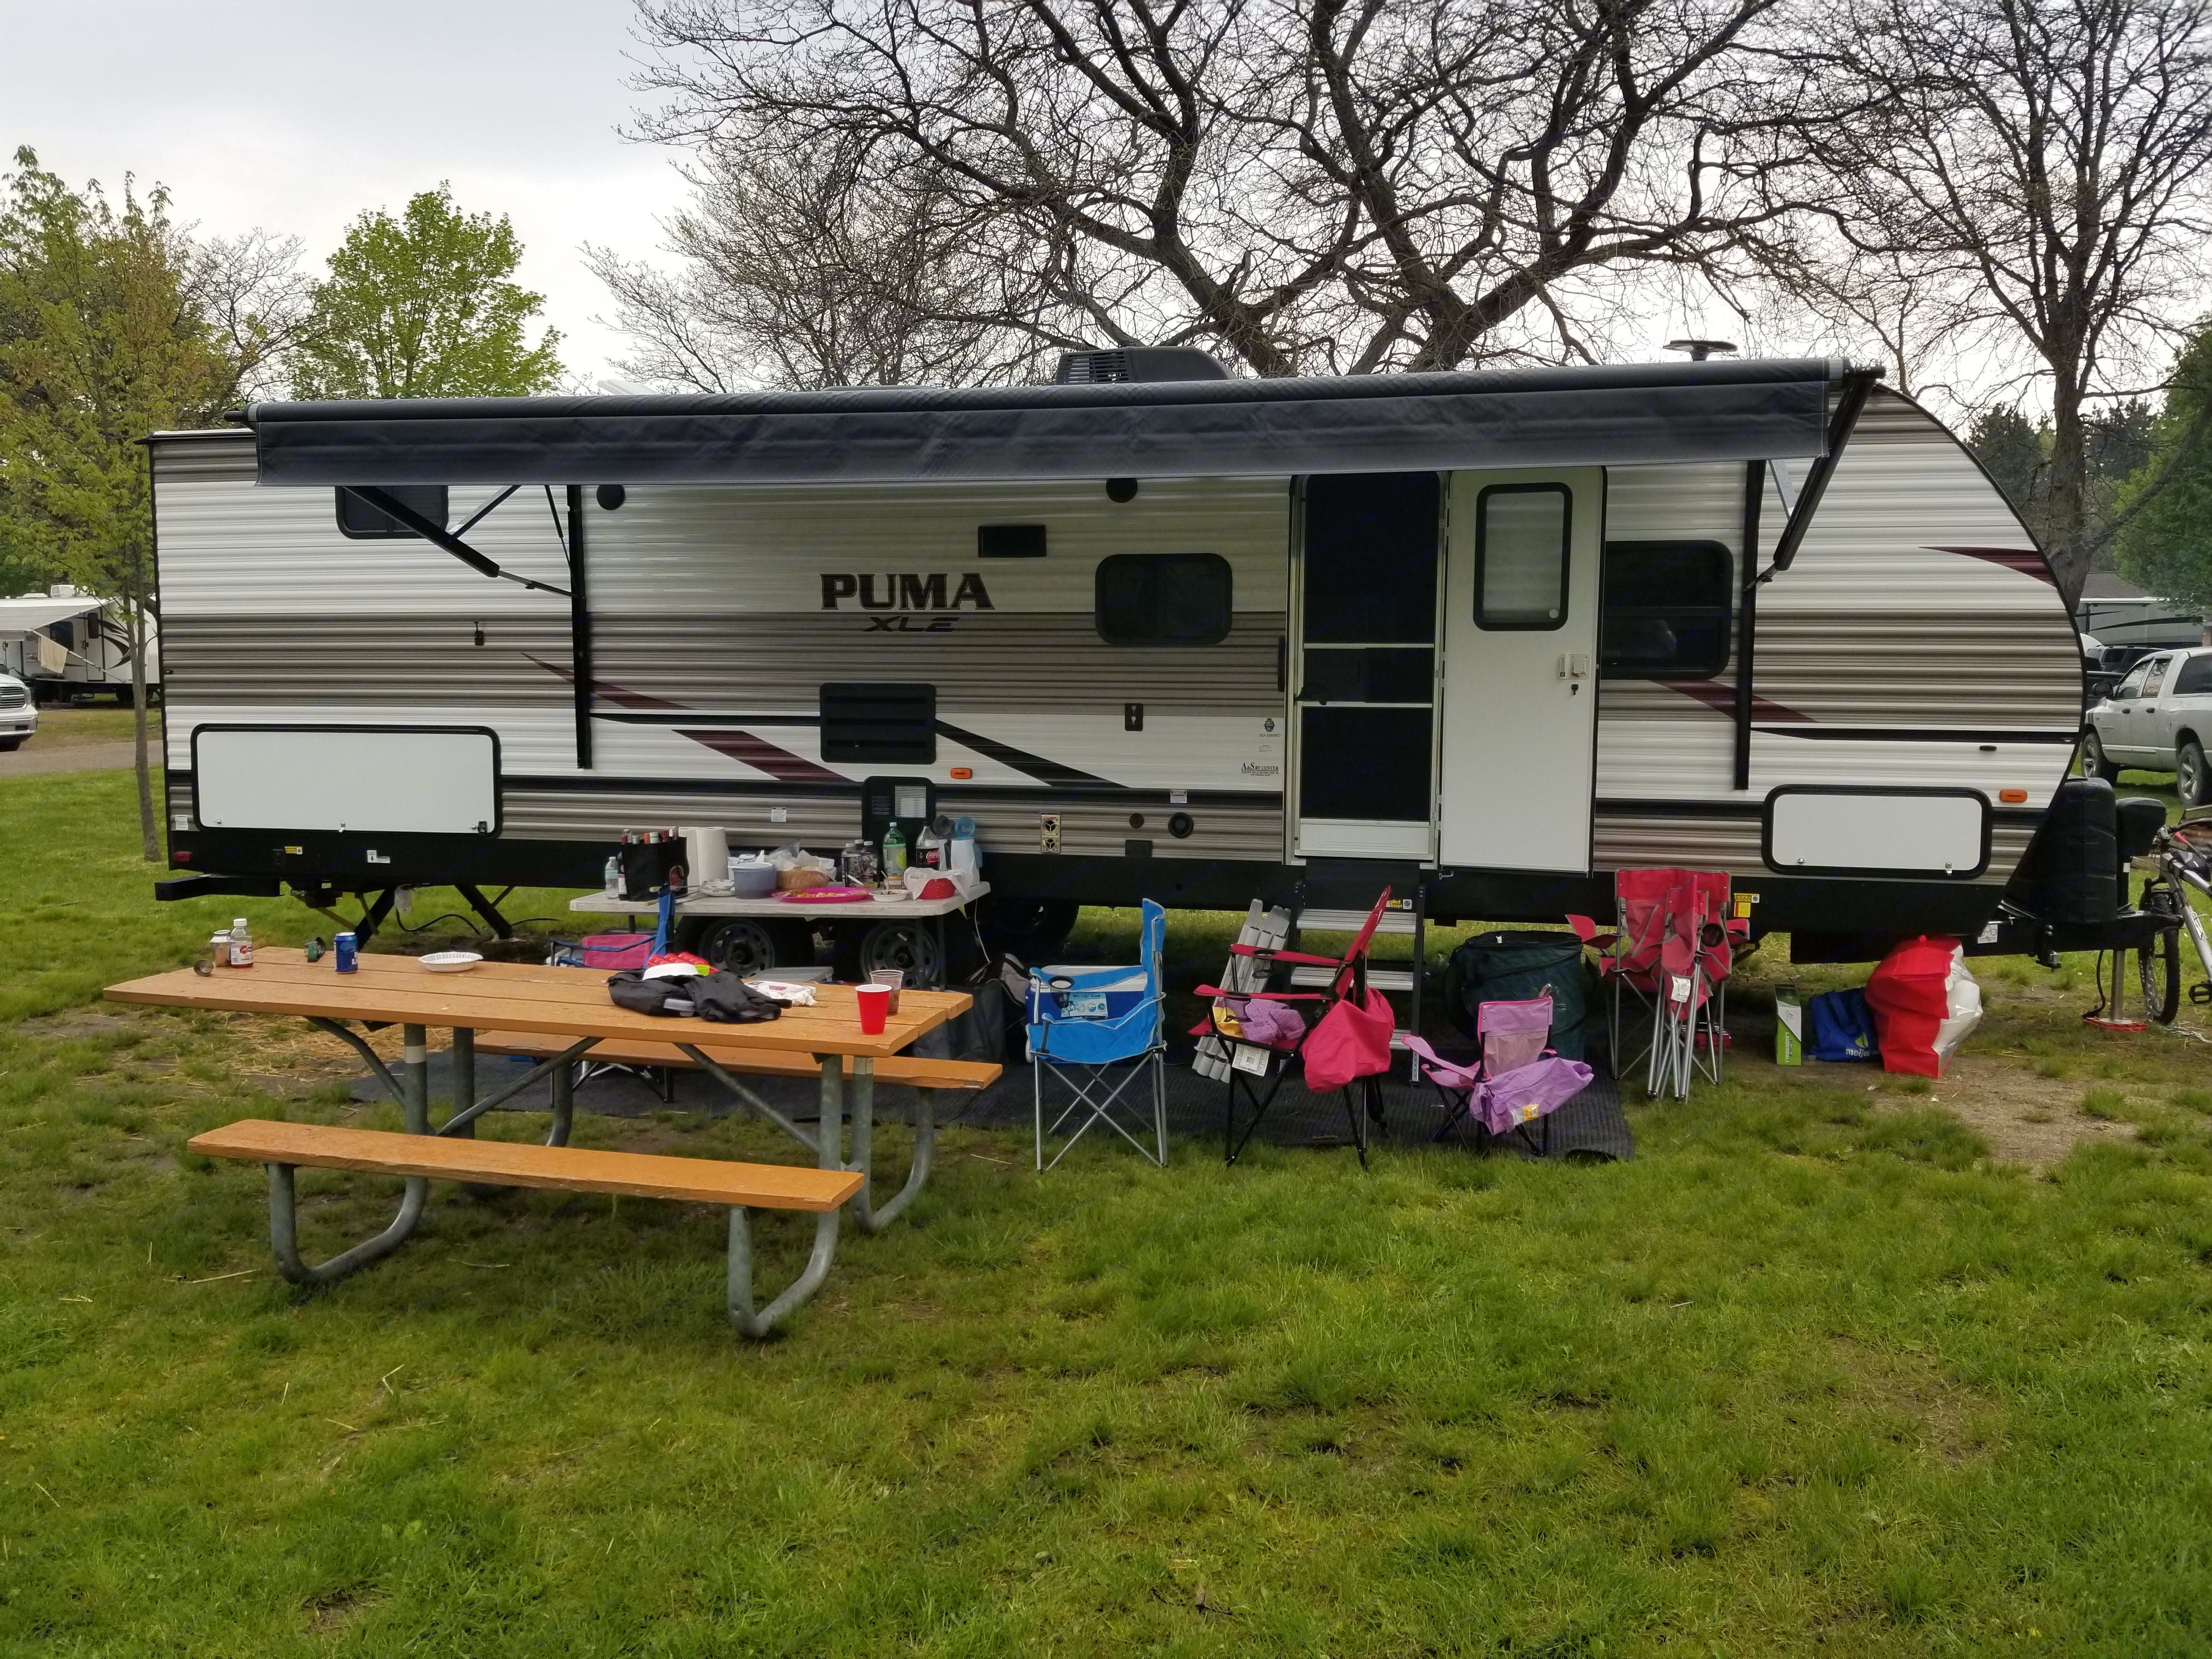 This was the first trip we had this camper out.. Palomino Puma 2019